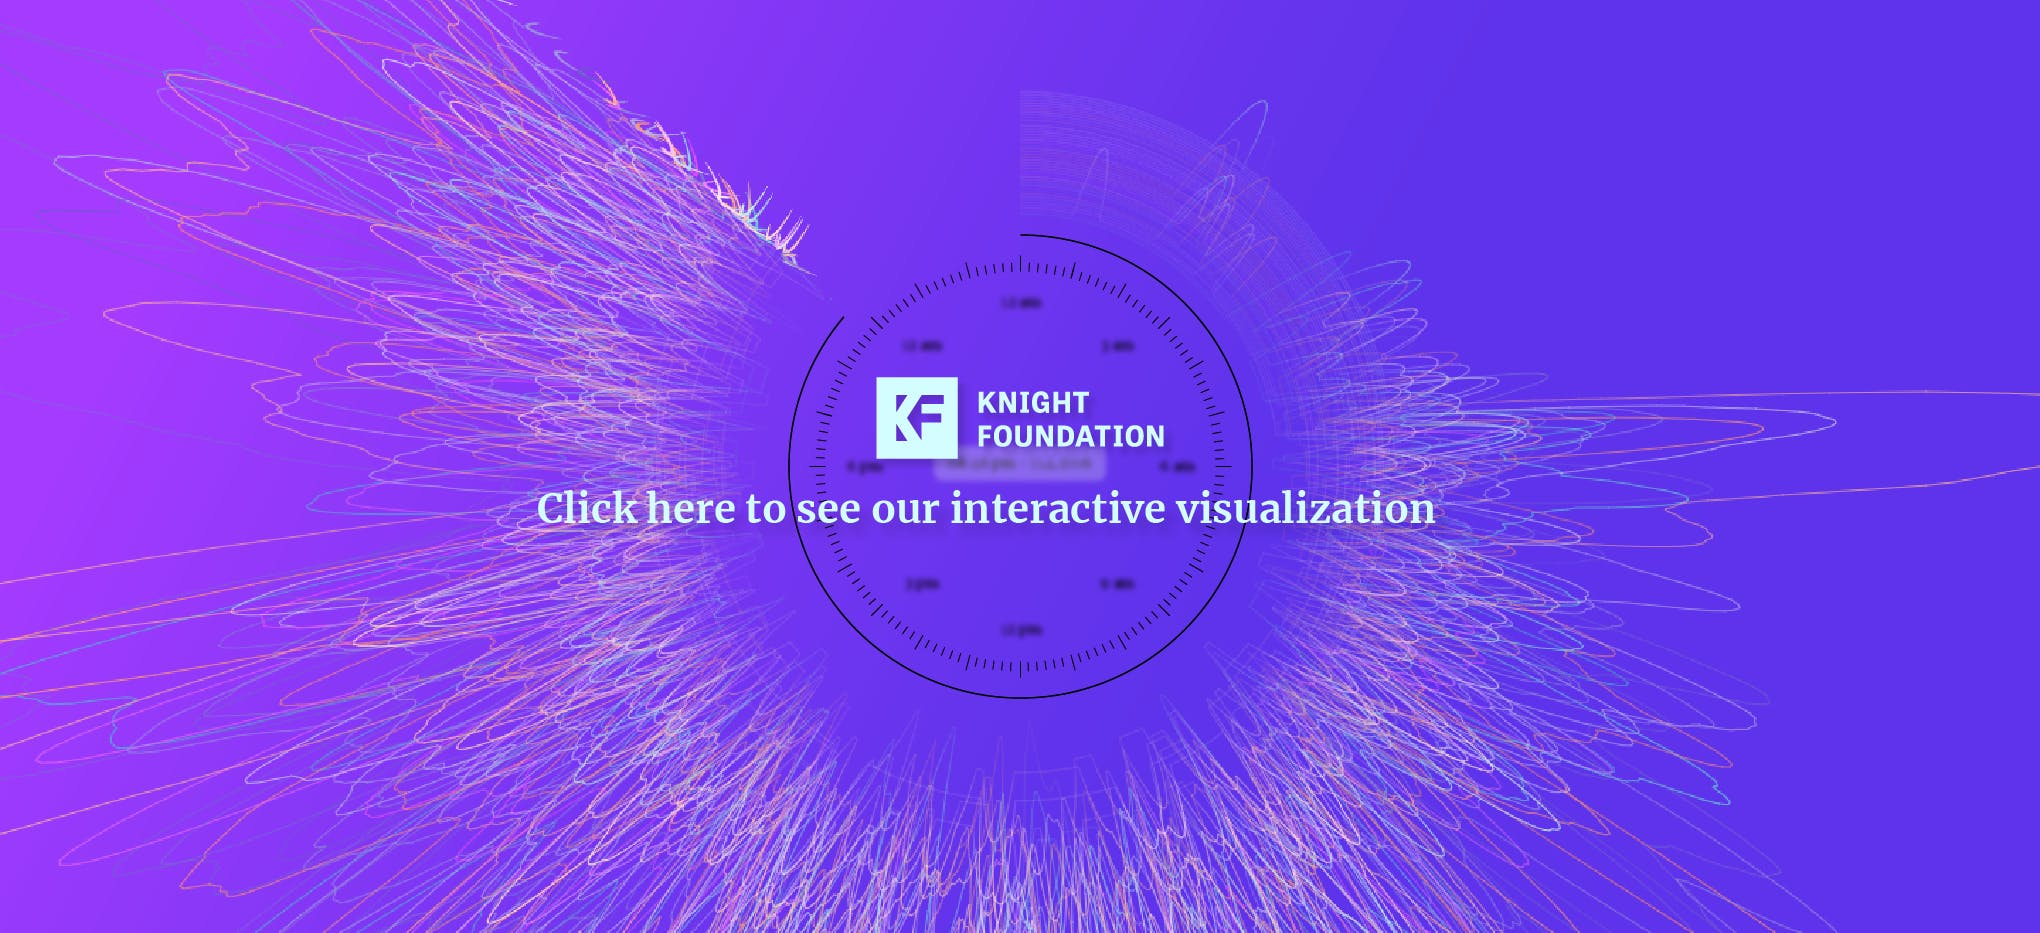 "<p><a href=""https://www.knightfoundation.org/features/misinfo"">Click here to see our interactive visualization</a></p>"